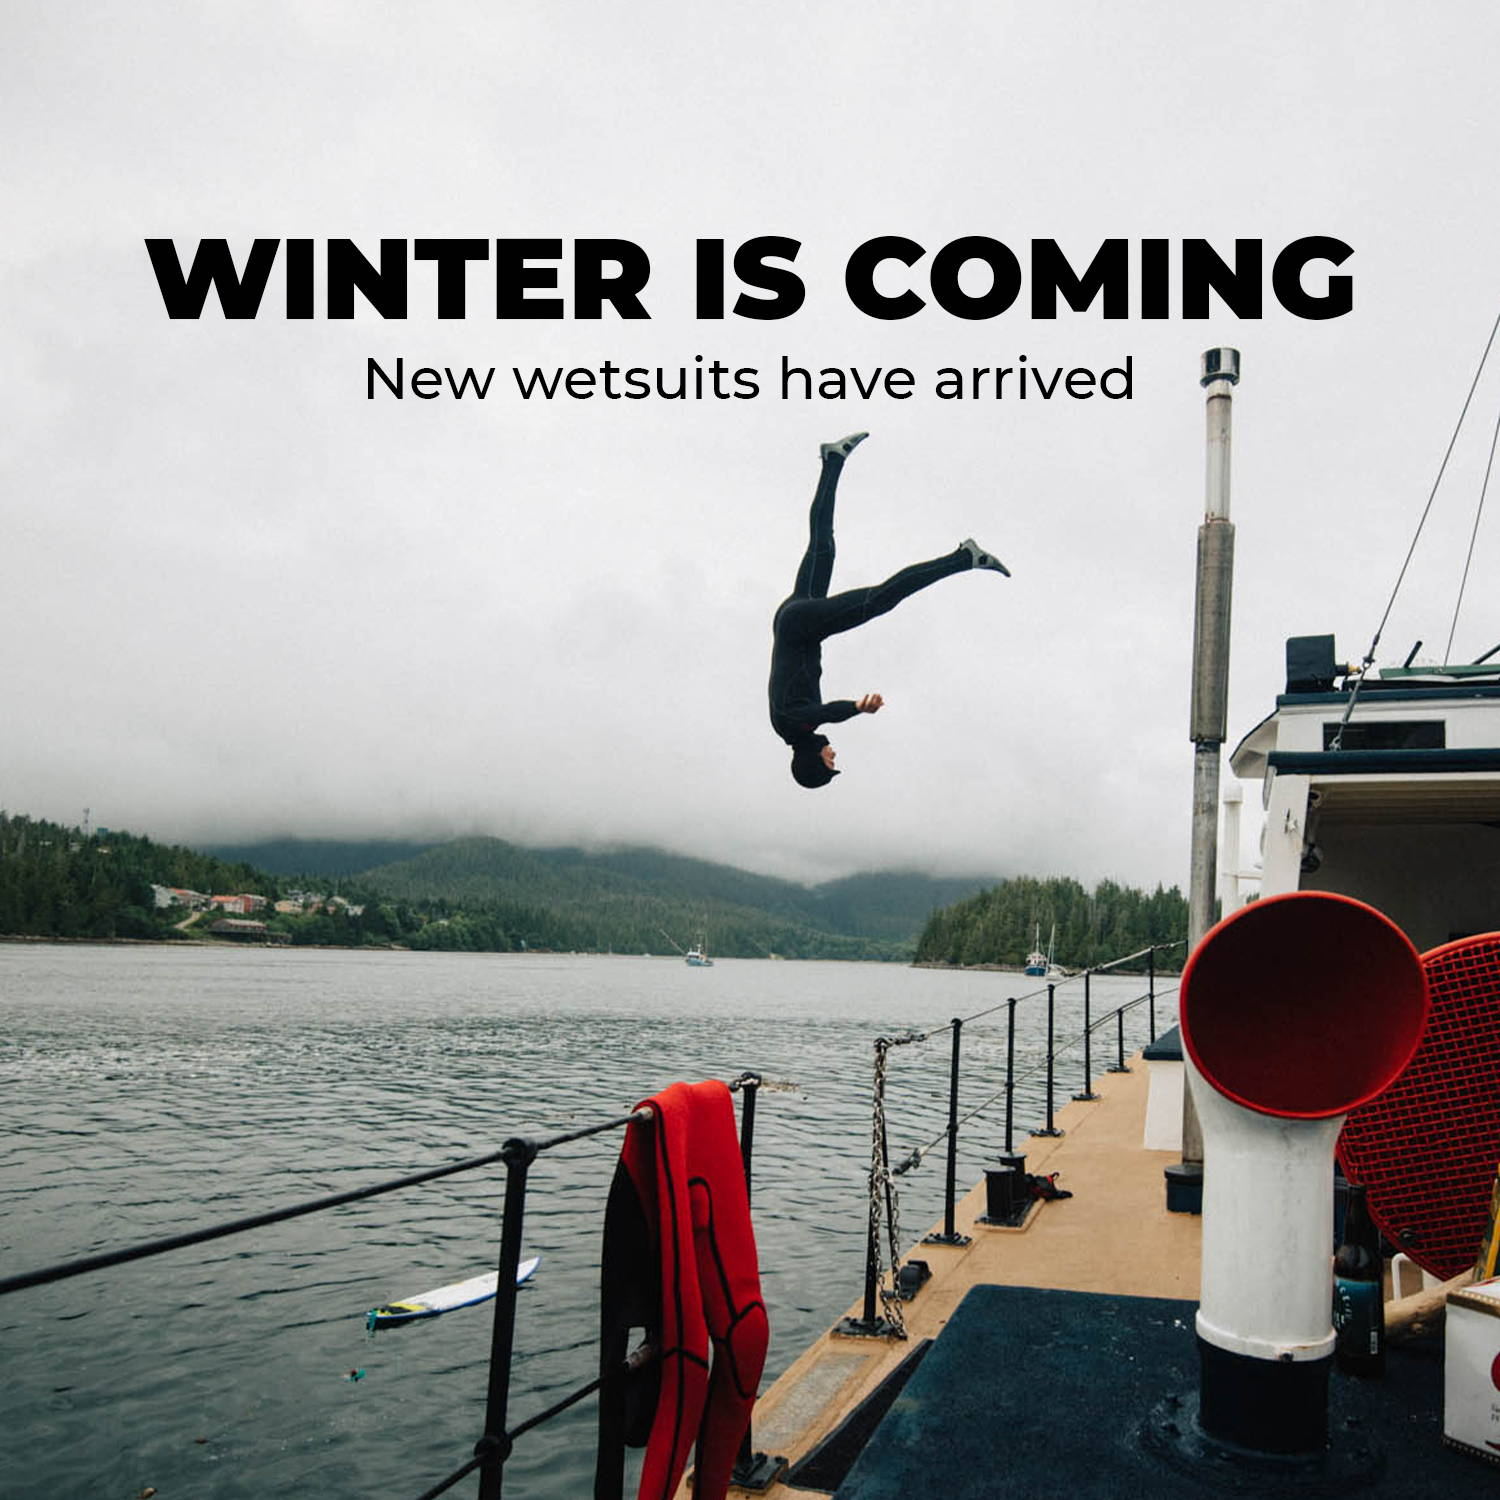 Winer is coming - New wetsuits have arrived